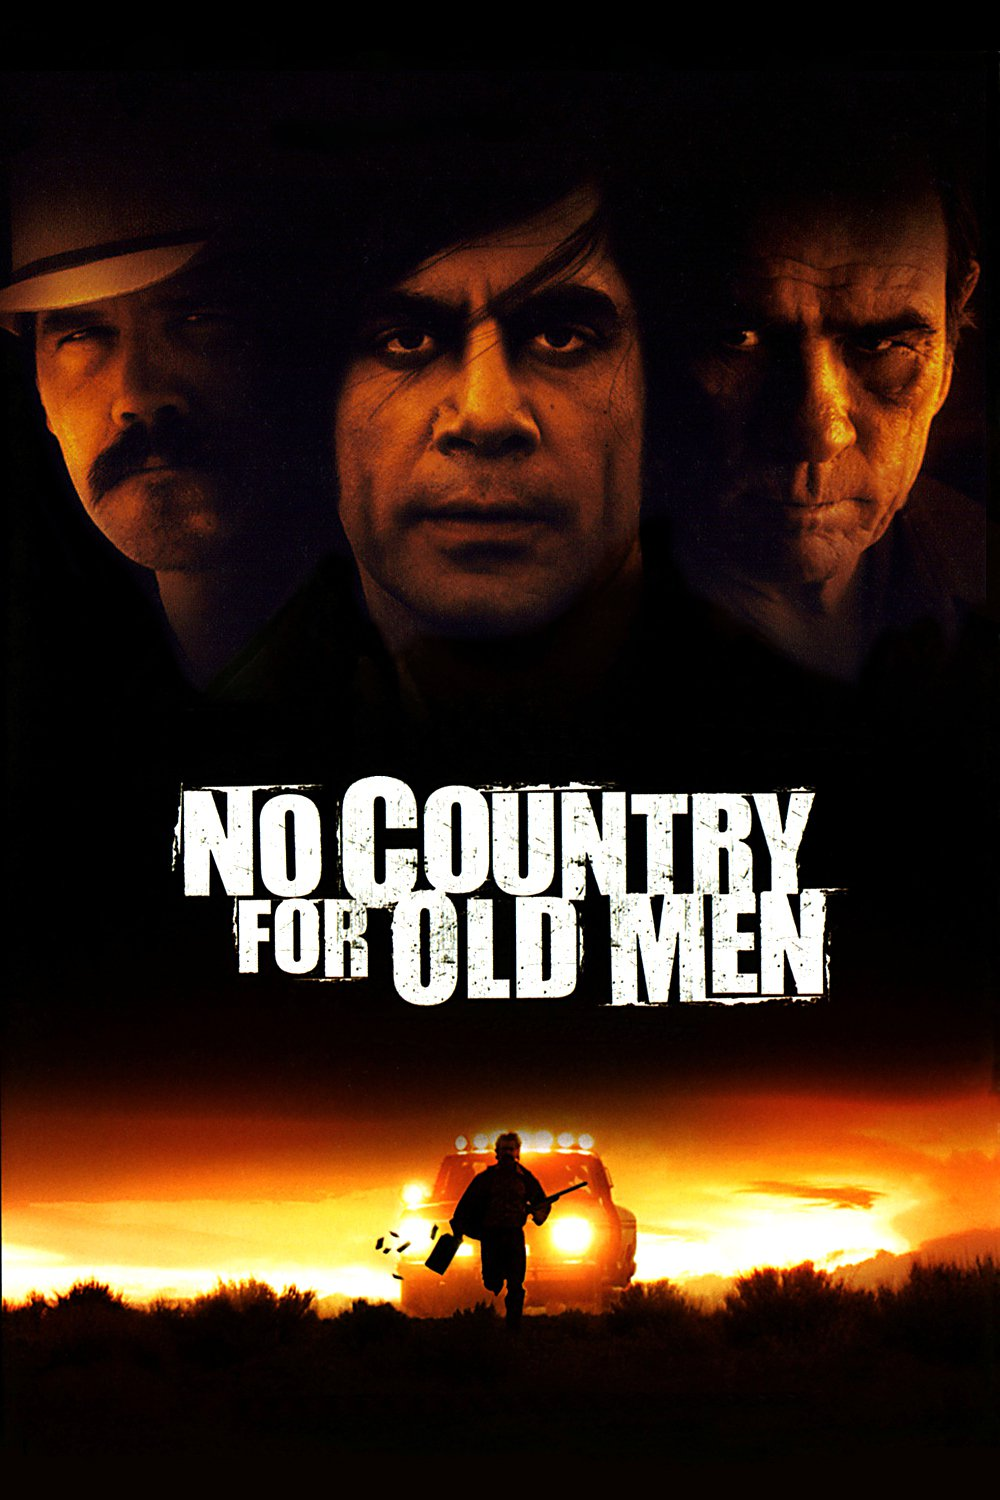 No Country for Old Men (2007) - Directed by: Ethan Coen, Joel CoenStarring:Tommy Lee Jones, Javier Bardem, Josh Brolin, Kelly Macdonald, Woody HarrelsonRated: R for Strong Graphic Violence and Some LanguageRunning Time: 2 h 3 mTMM Score: 5 stars out of 5STRENGTHS: Writing, Directing, Acting, CinematographyWEAKNESSES: -